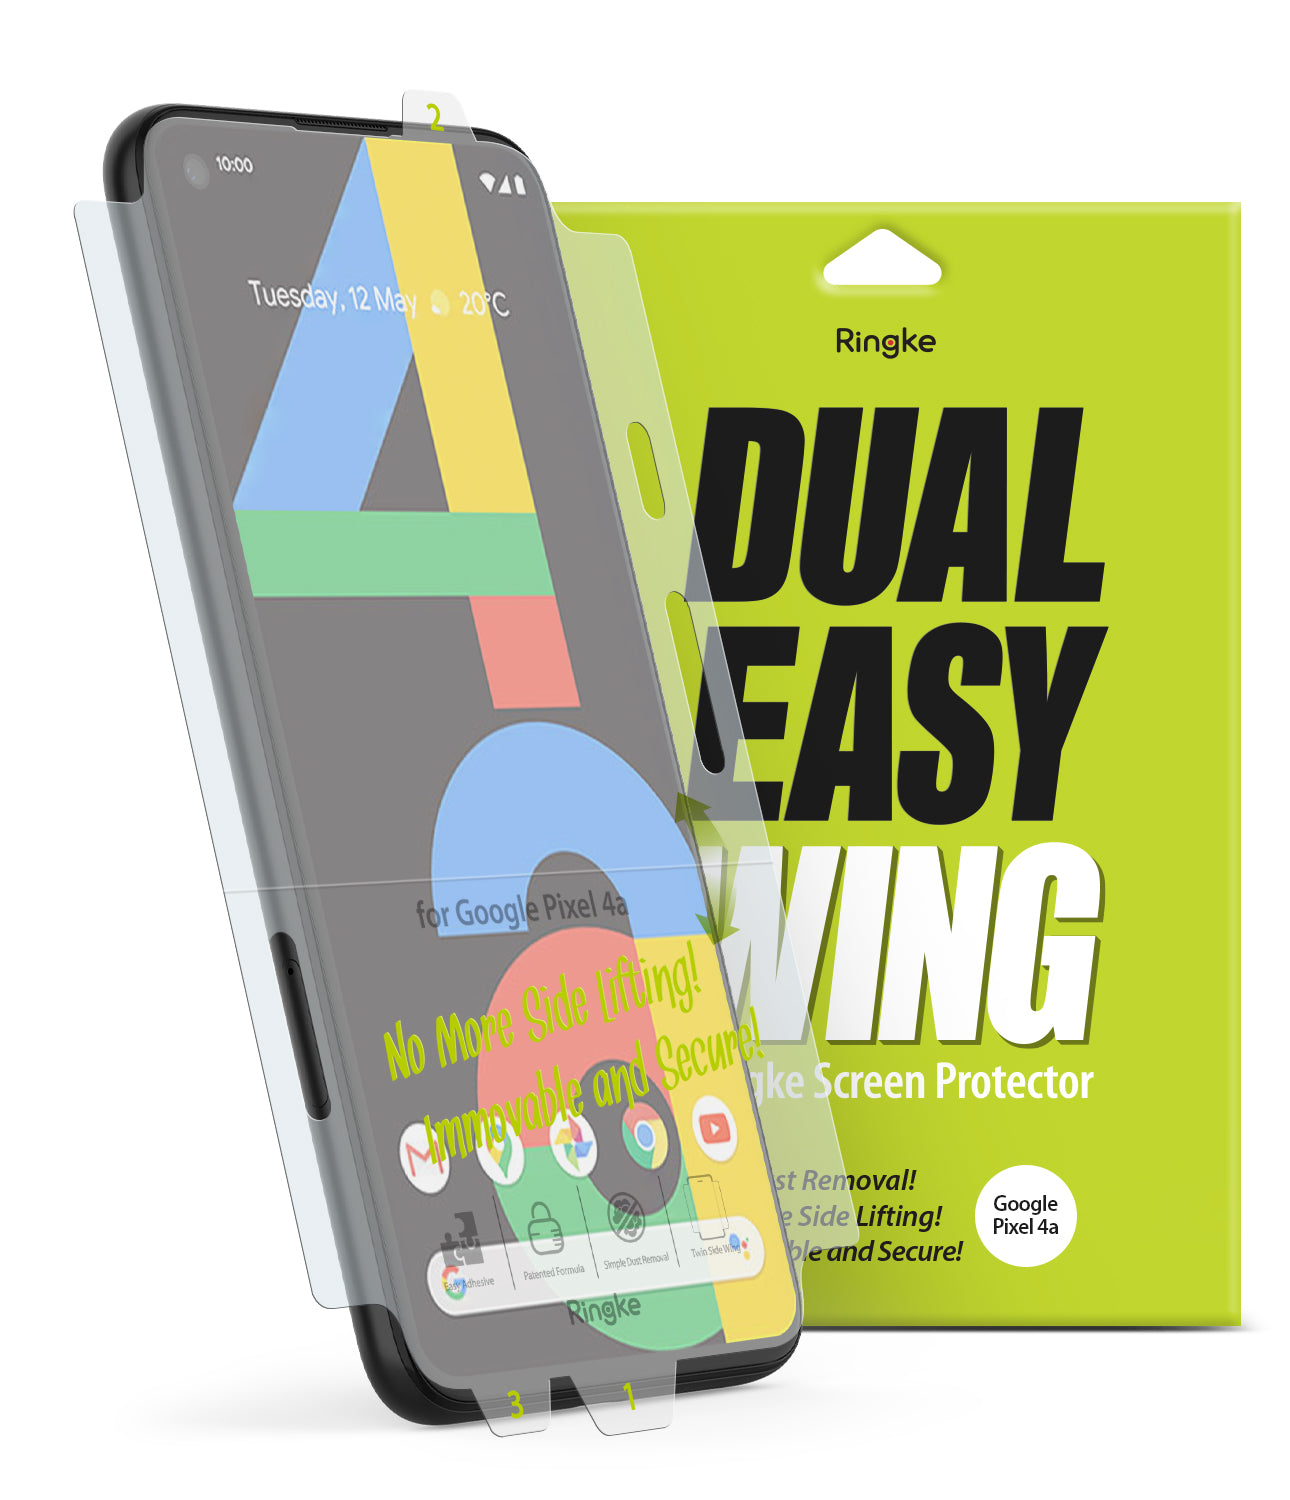 google pixel 4a screen protector - ringke dual easy film wing [2 pack]